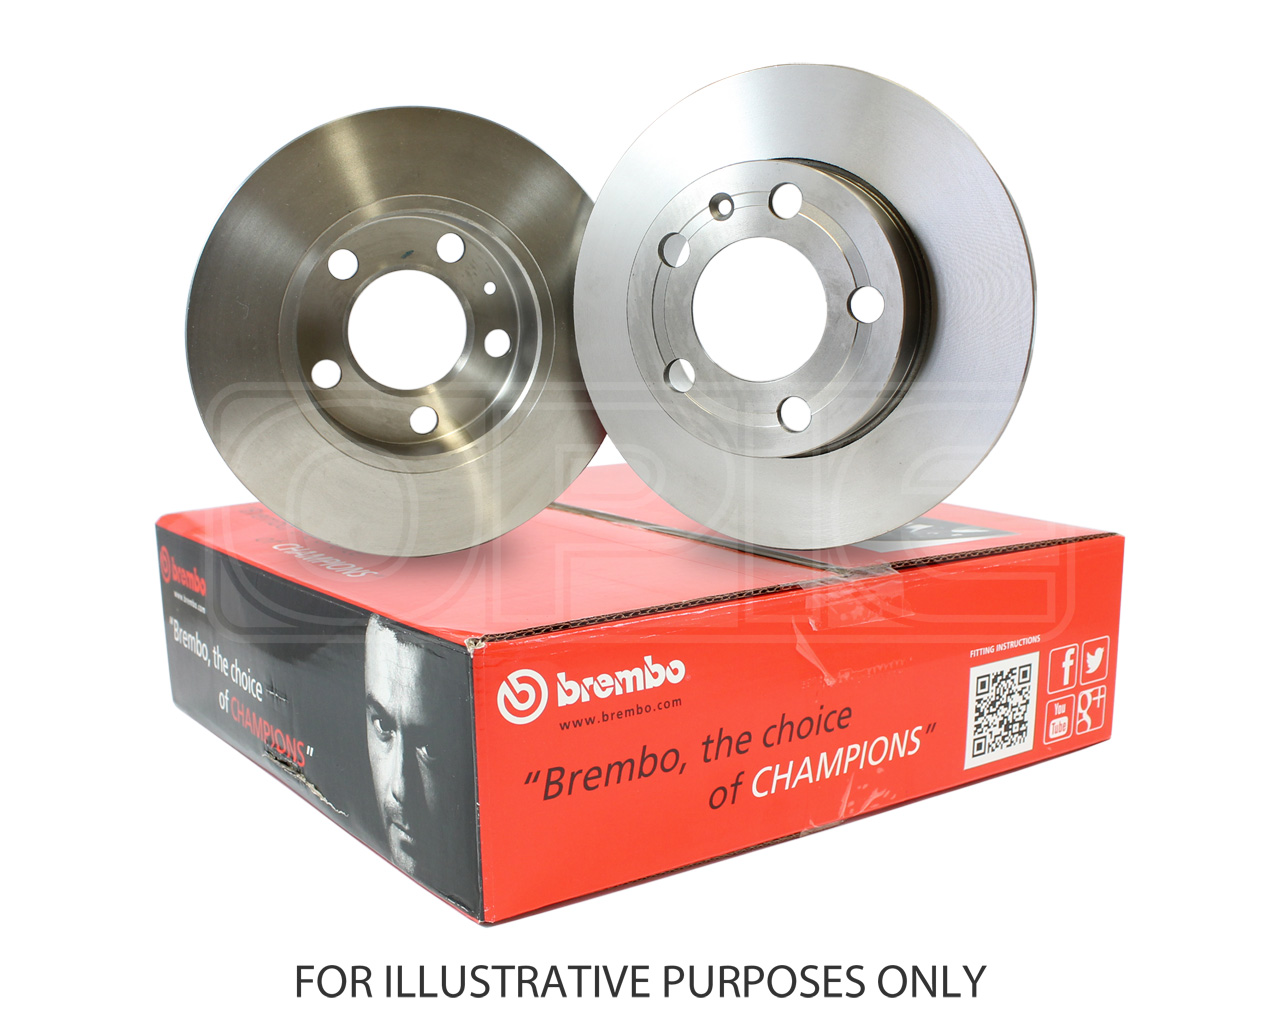 Brembo Pair Set of 2 Rear UV Coated Brake Disc Rotors For Subaru Forester Legacy